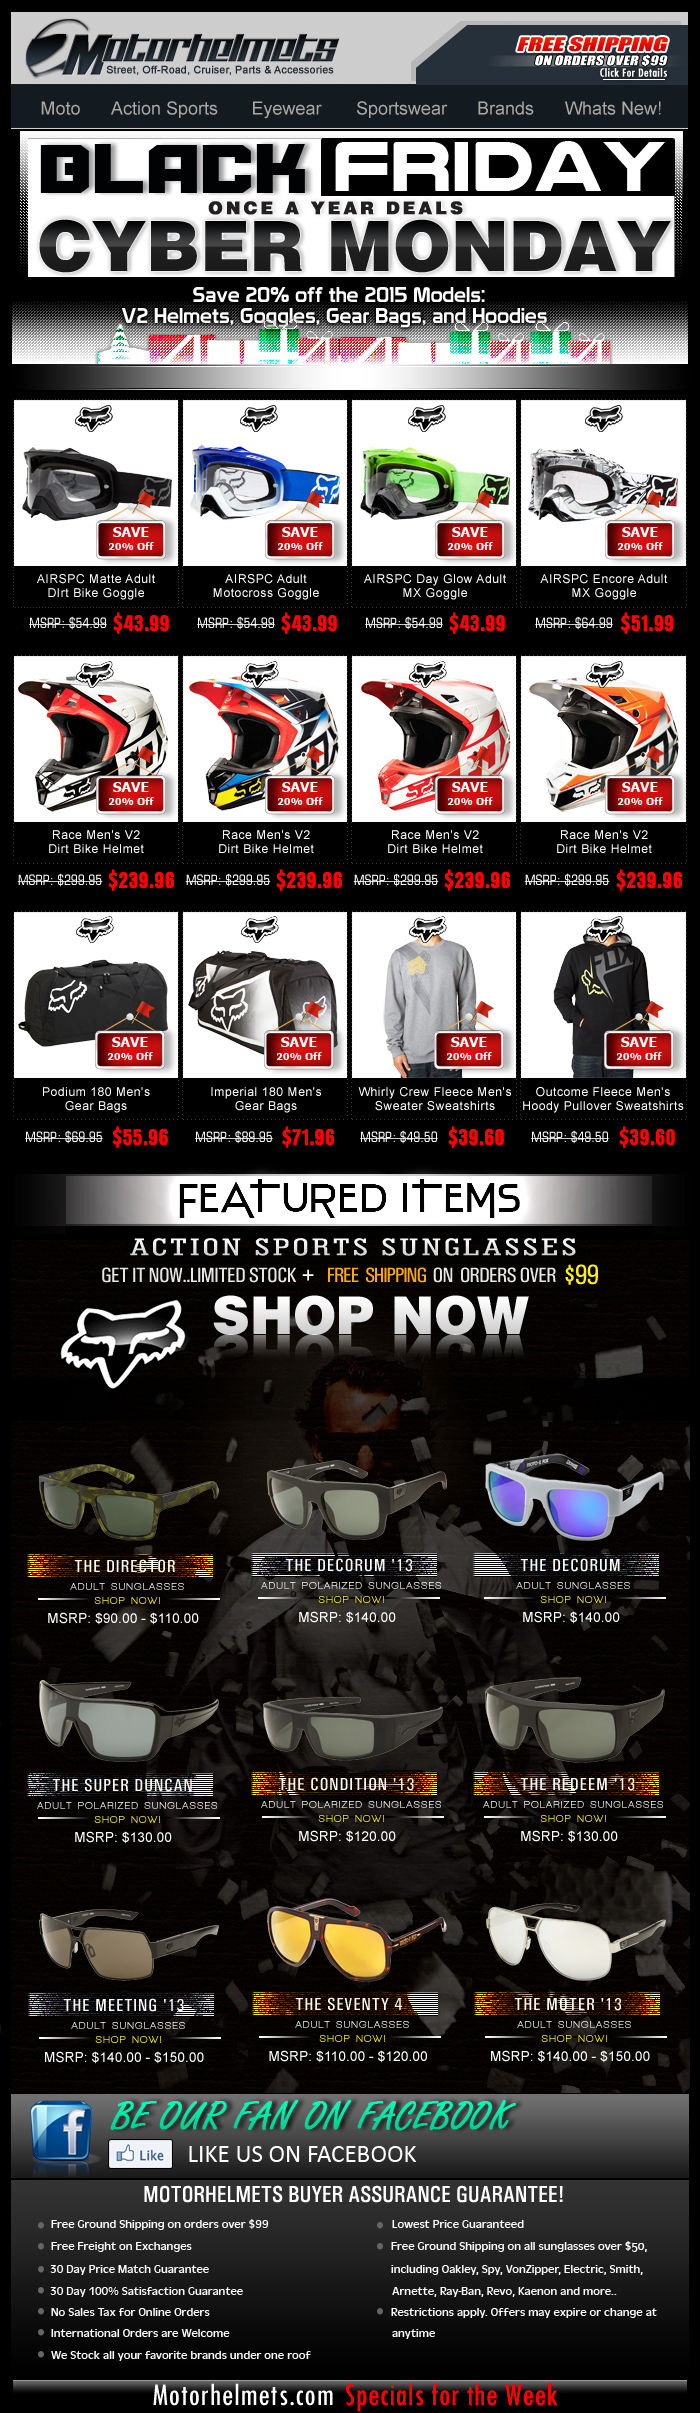 FOX WEEKEND SUPER SALE...as much as 20% off on Premium Gear & Apparel!